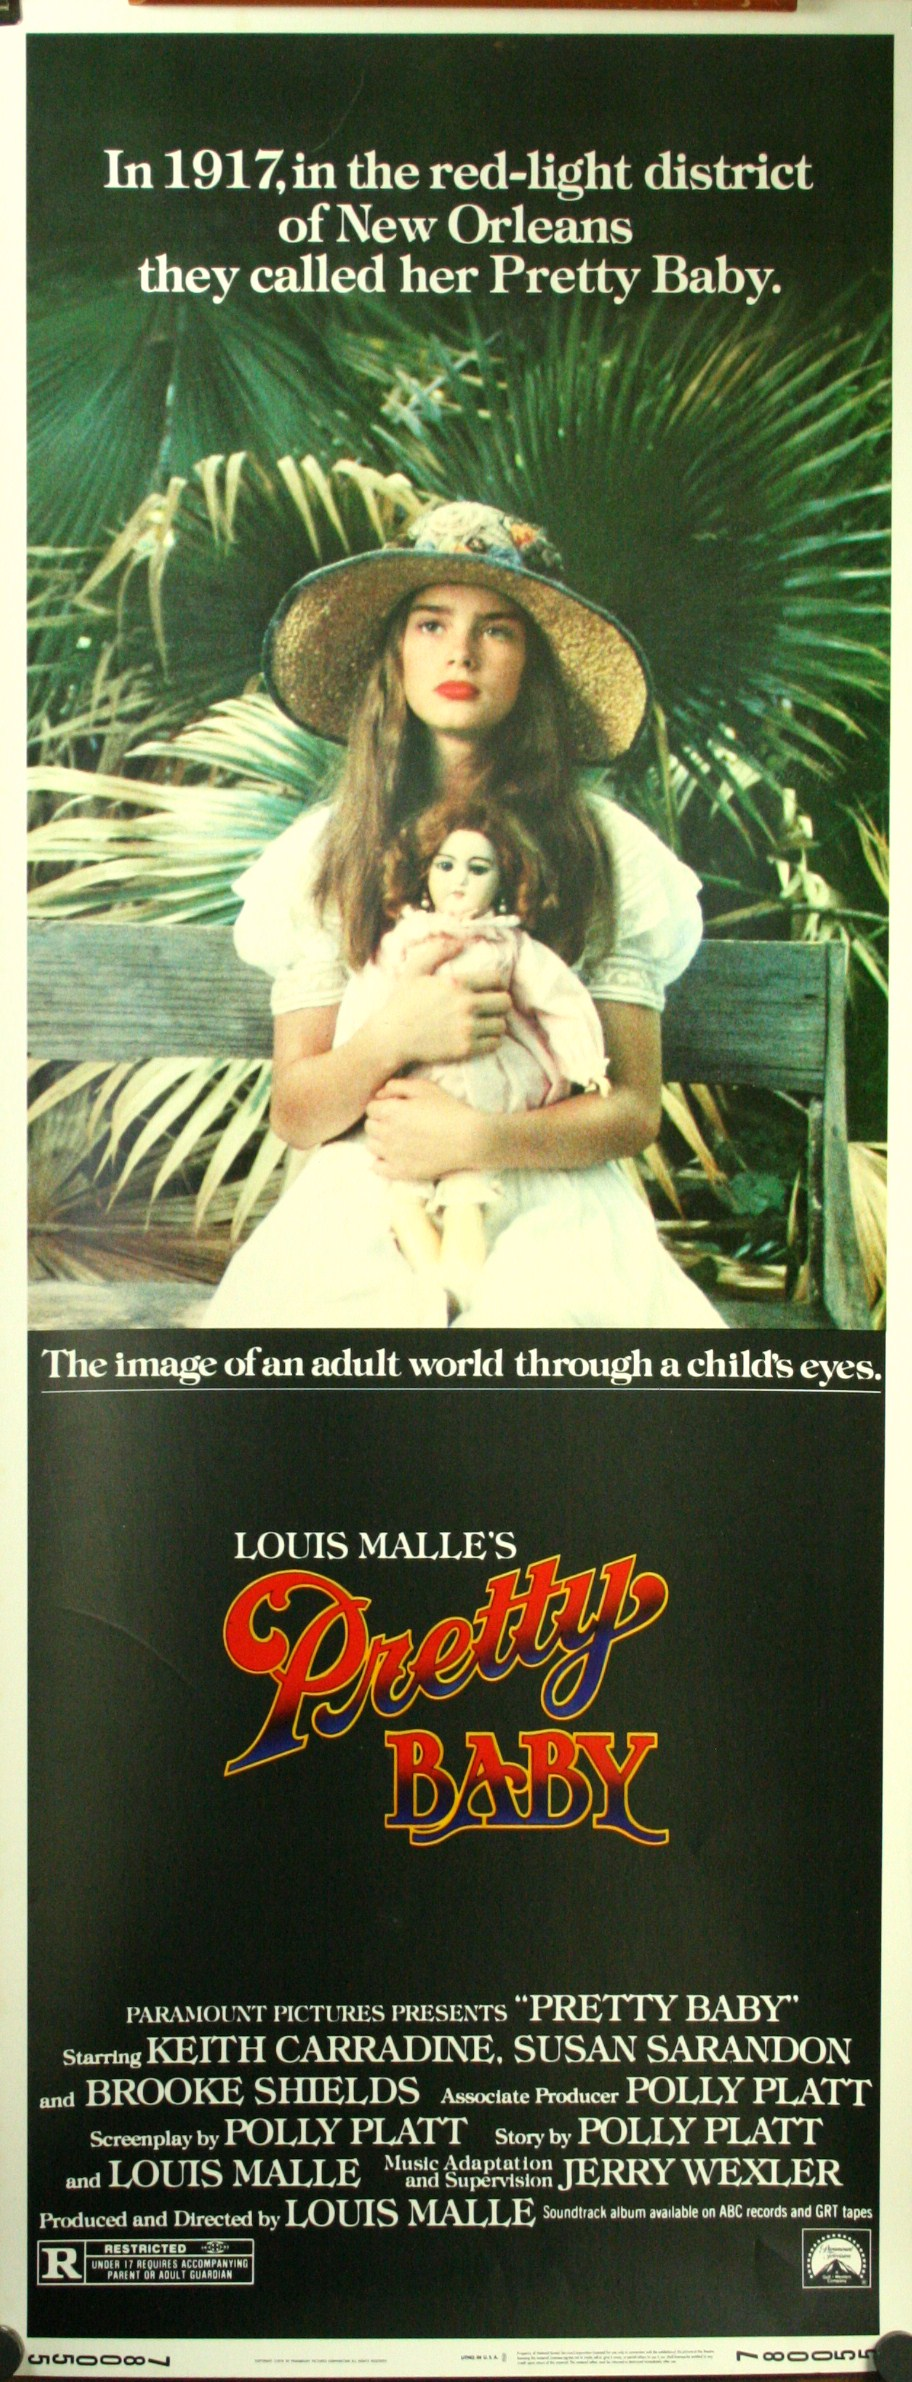 PRETTY BABY Insert Poster starring Brooke Shields